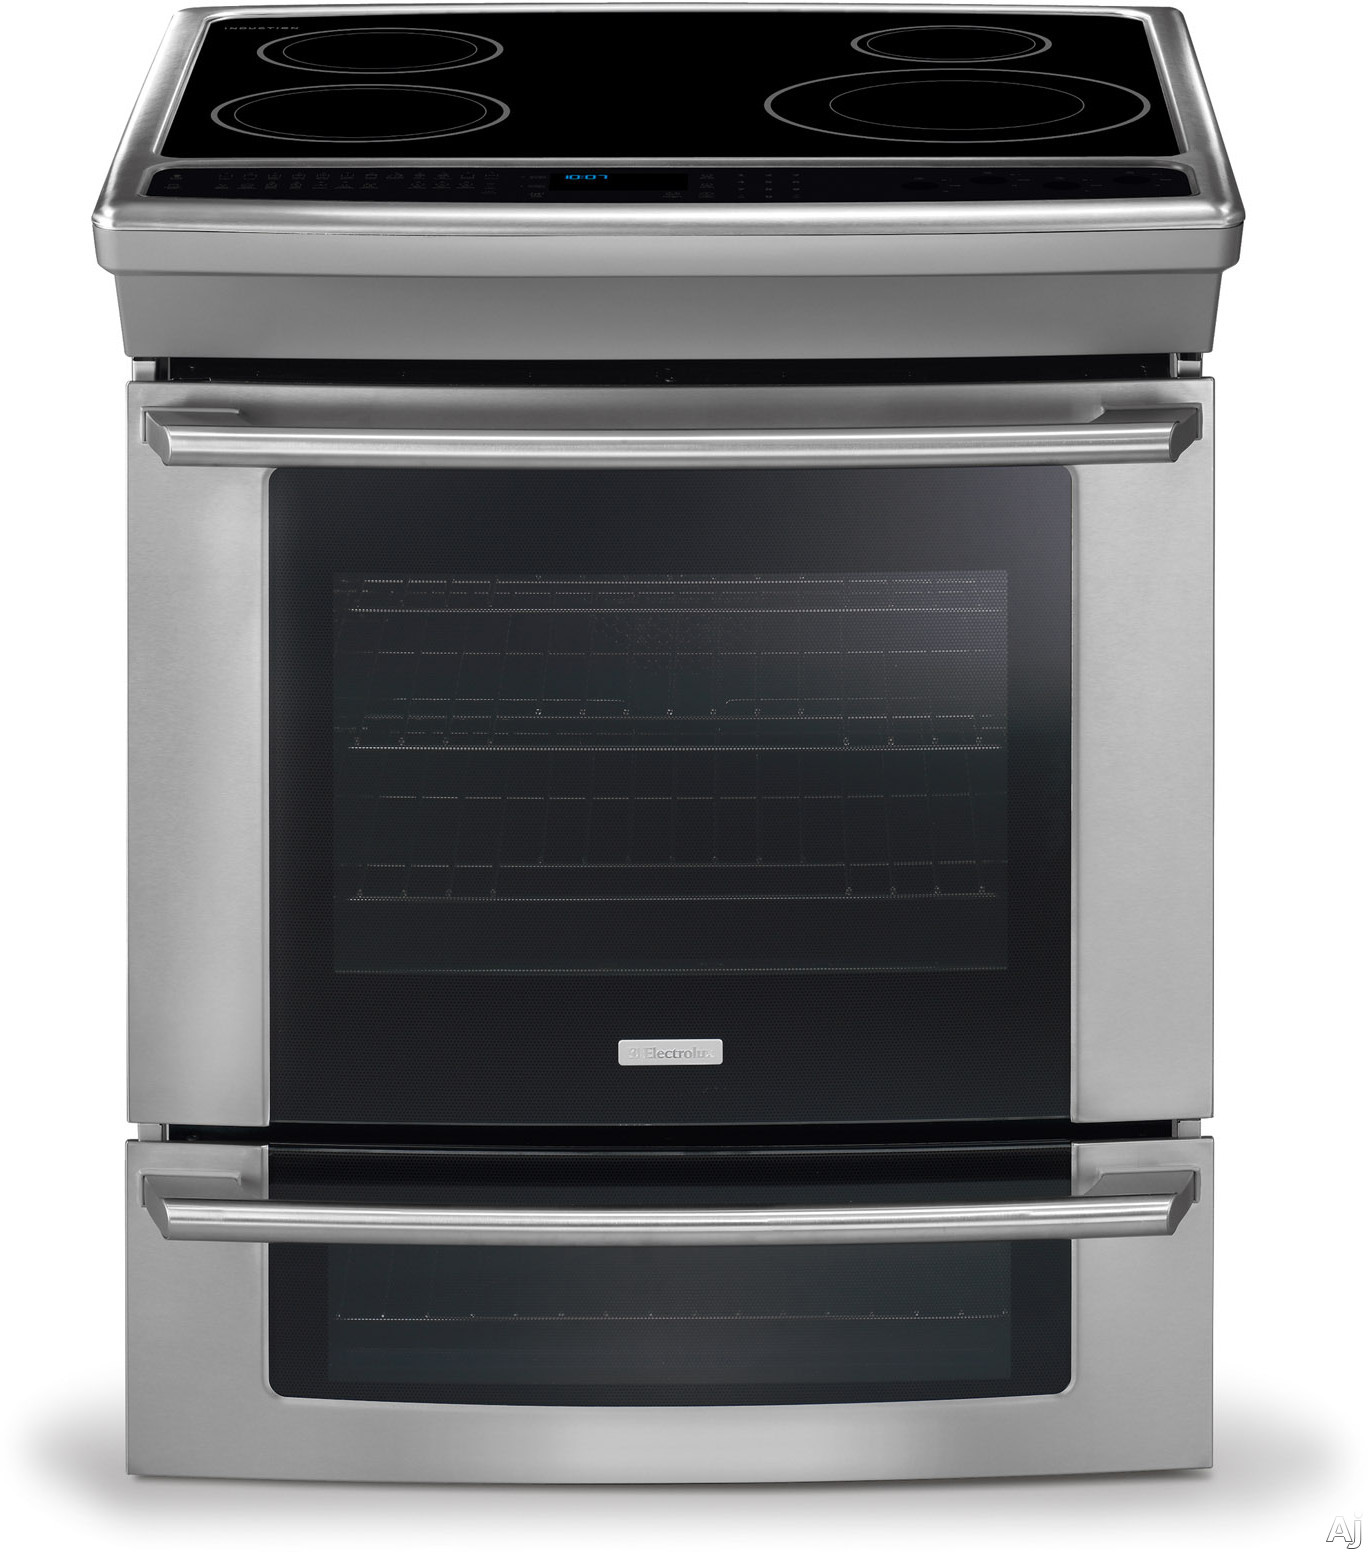 Electrolux induction range